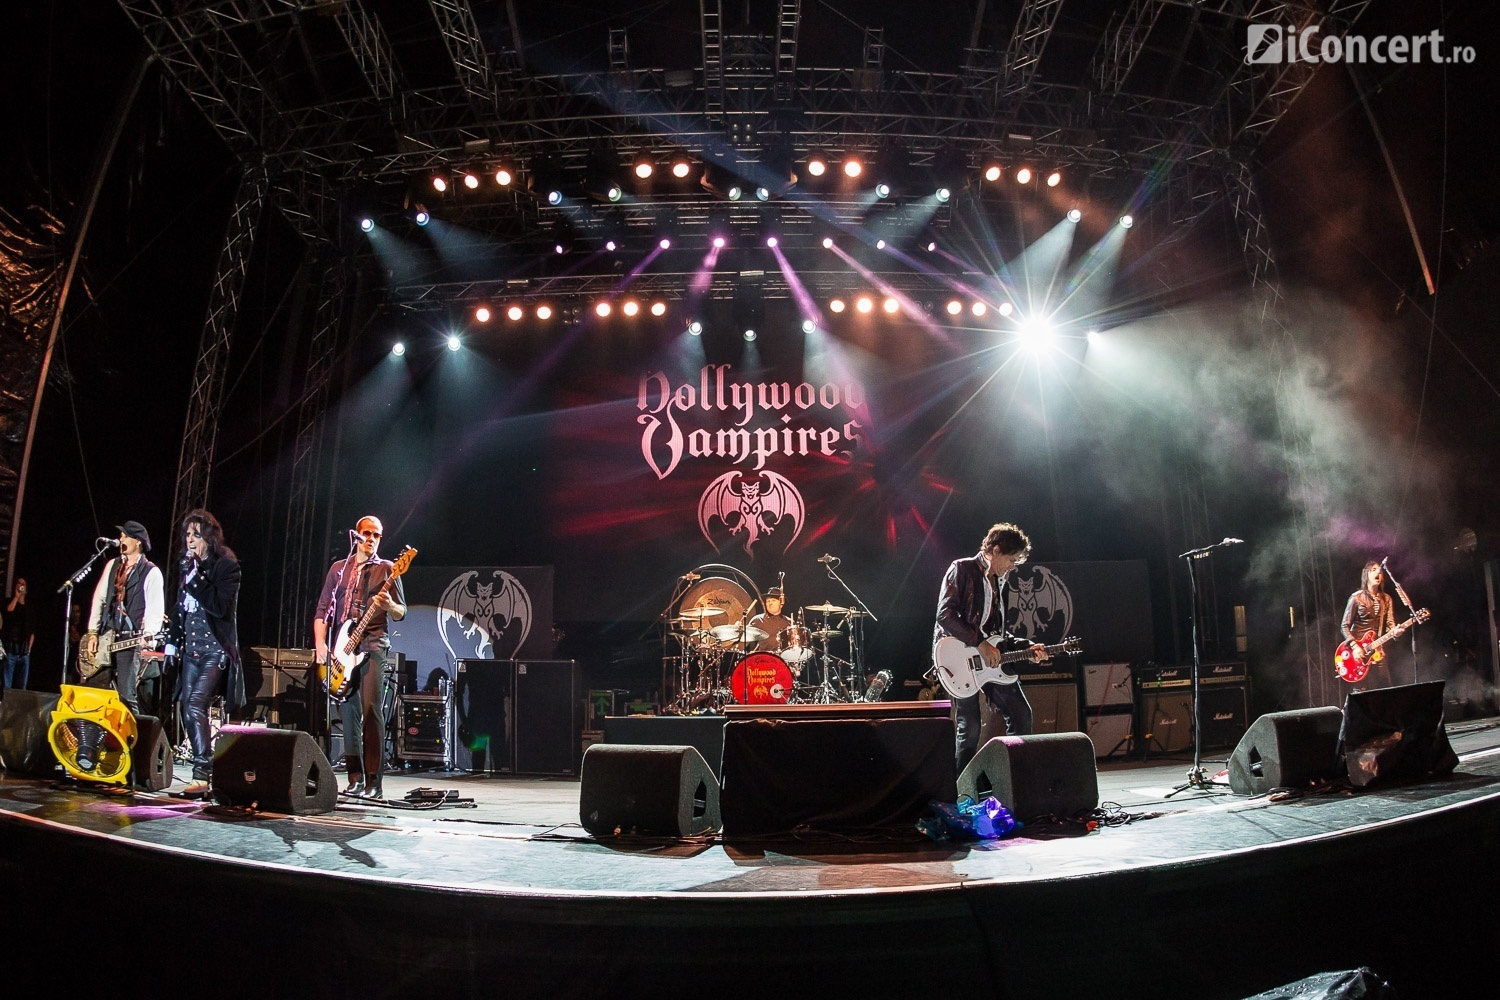 The Hollywood Vampires în concert la Bucureşti - Foto: Paul Voicu / iConcert.ro